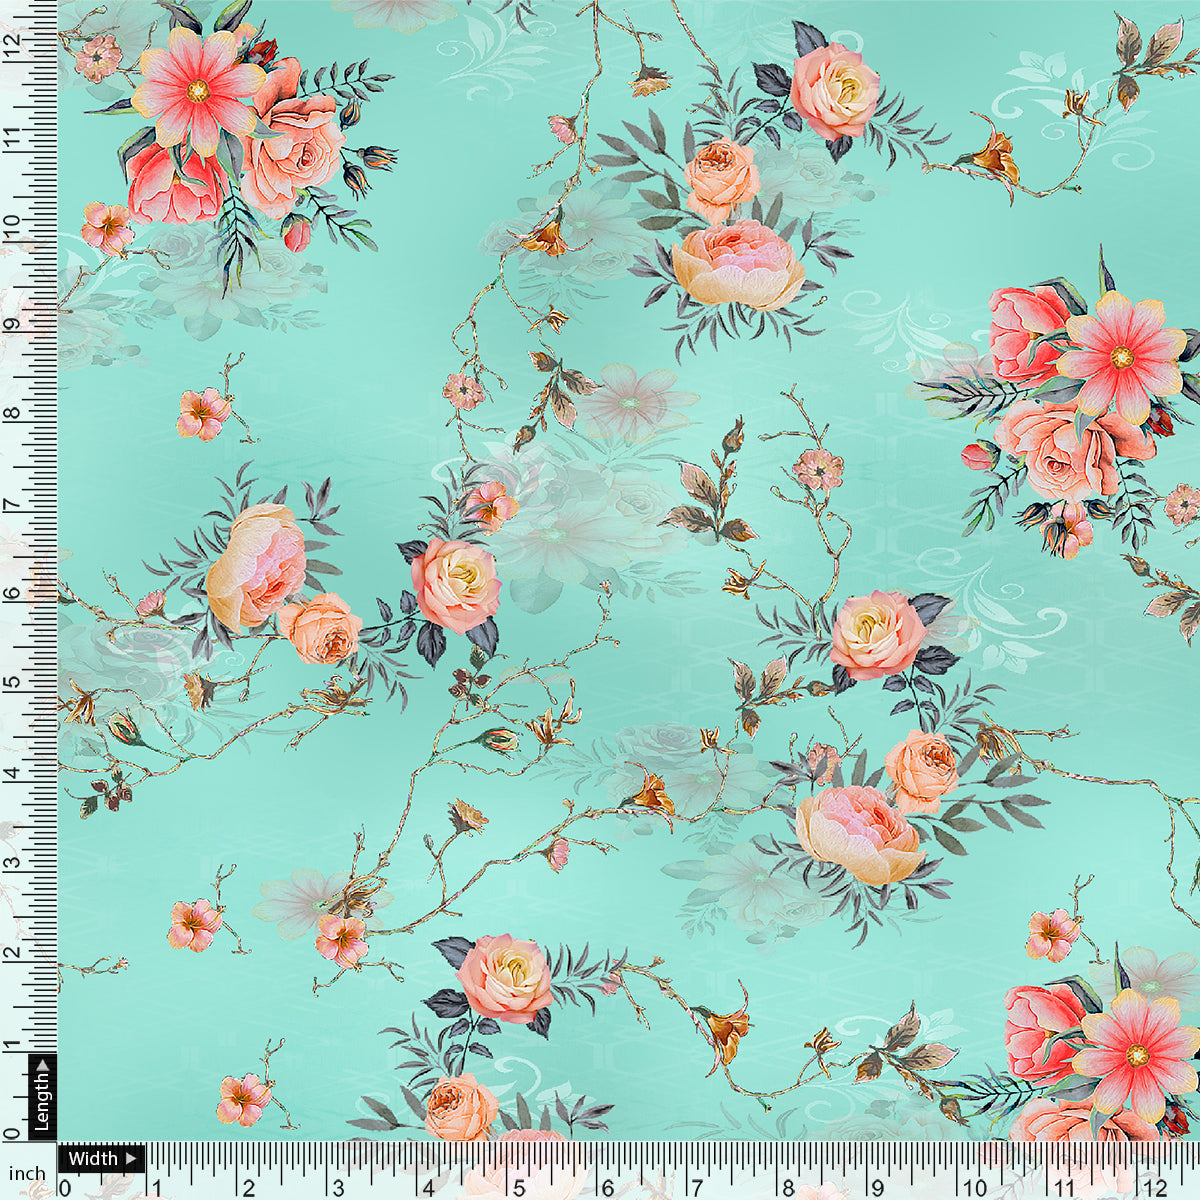 Flower Branch Allover Digital Printed Fabric - Pure Cotton